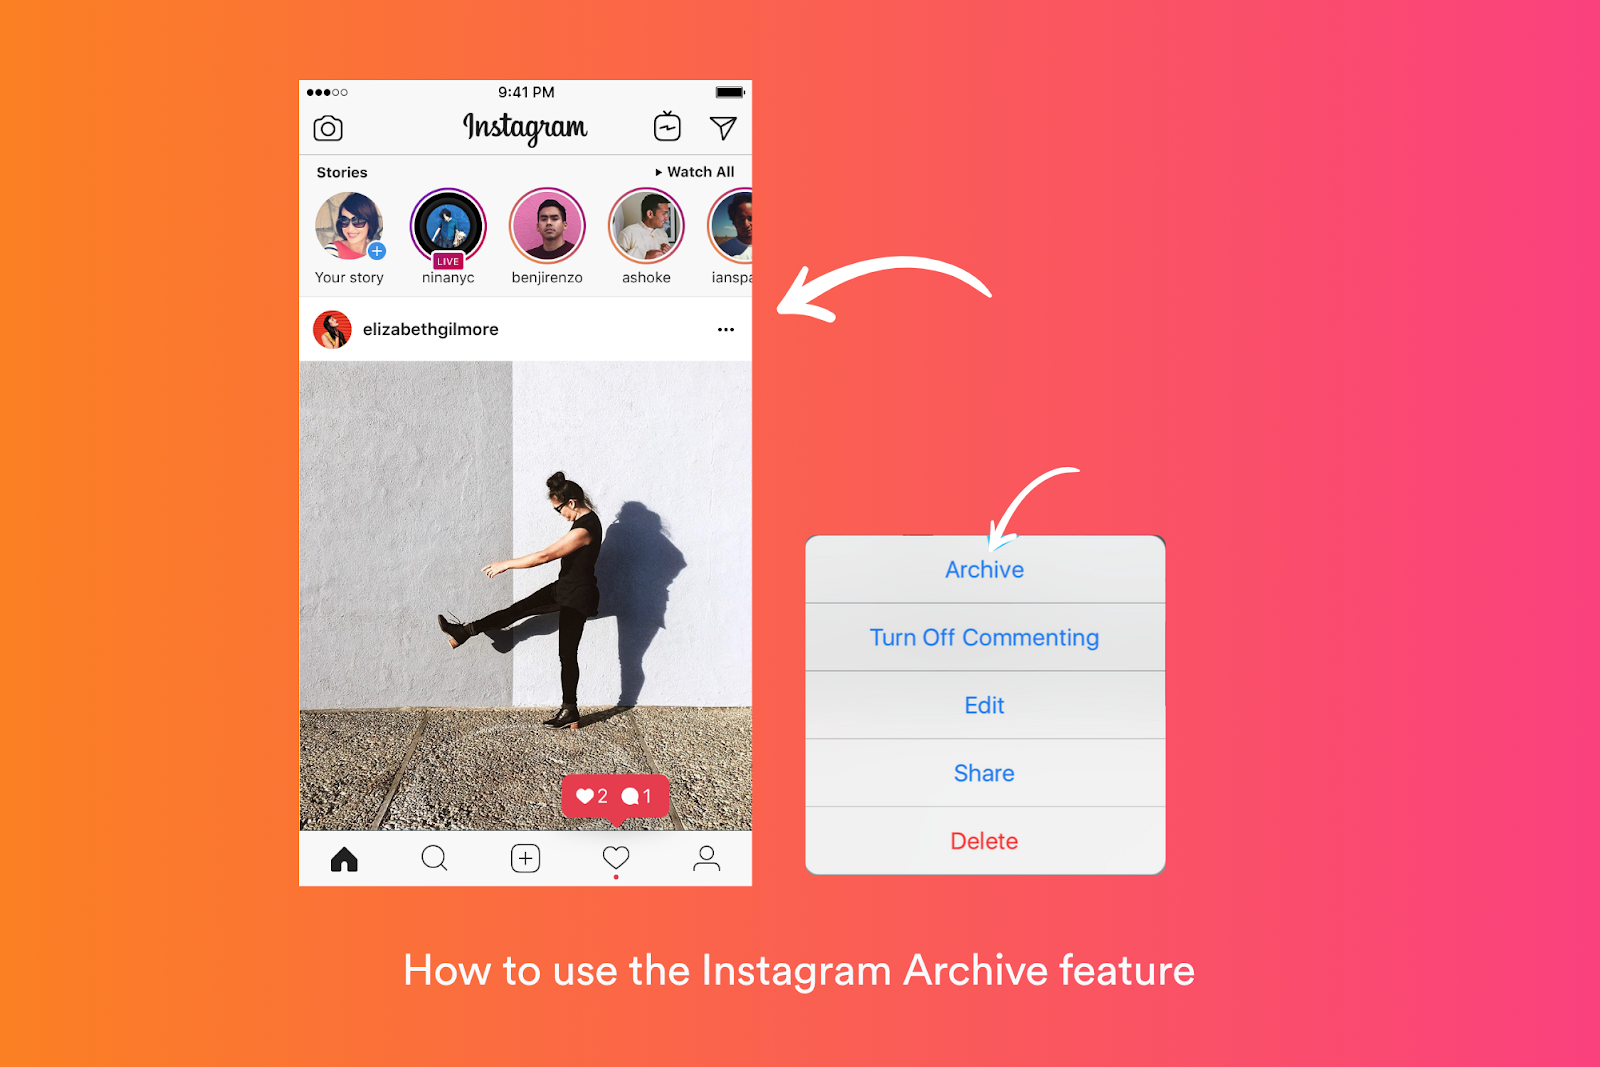 instagram-growth-archive-old-content